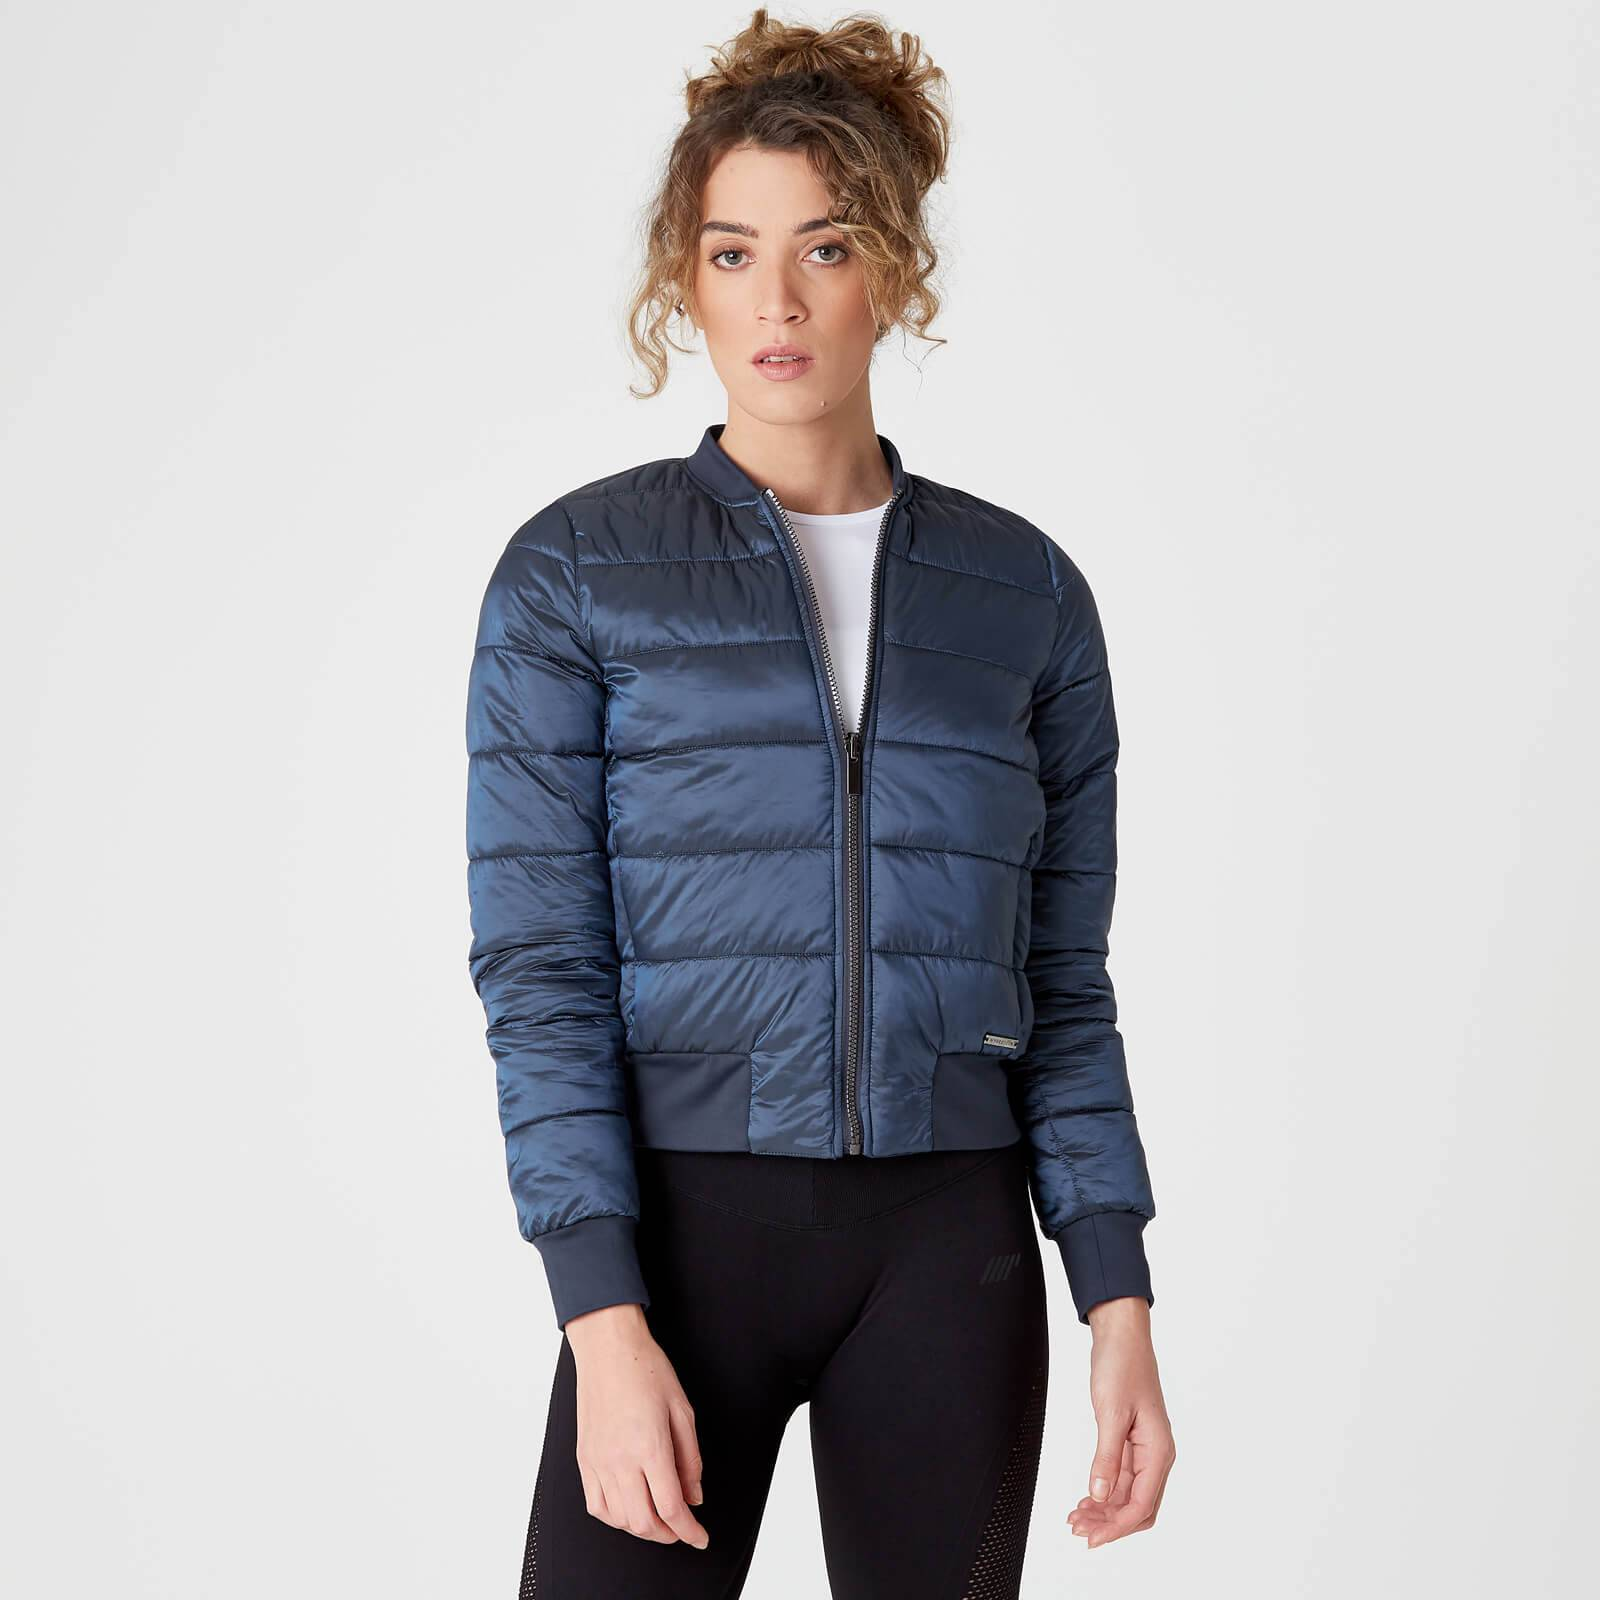 Myprotein MP Reversible Bomber Jacket - Dark Indigo - S